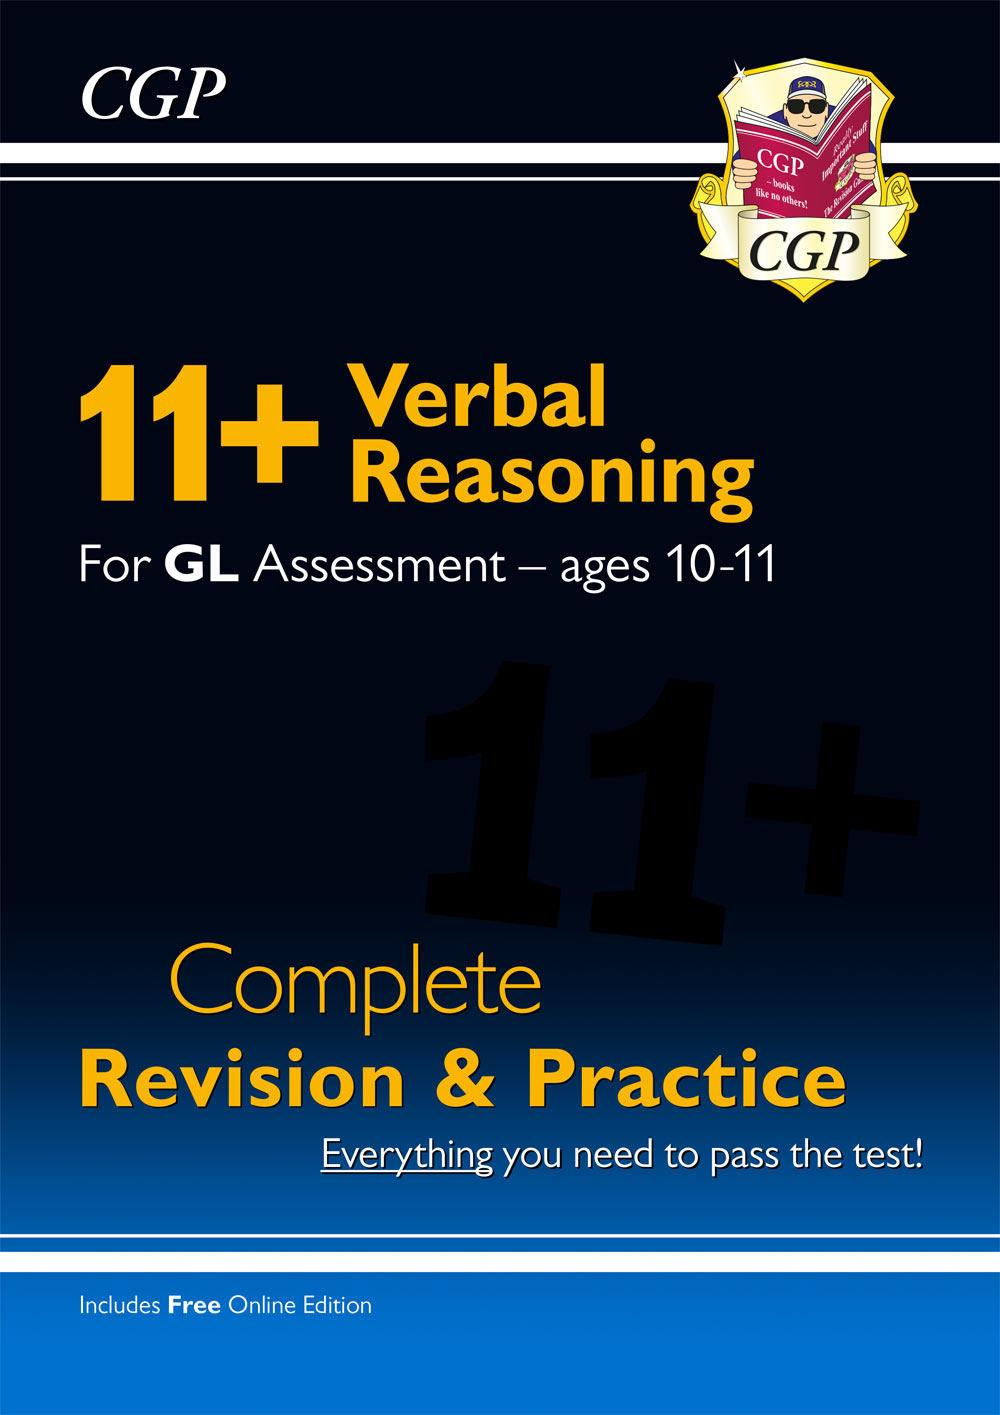 VHSE1 - New 11+ GL Verbal Reasoning Complete Revision and Practice - Ages 10-11 (with Online Edition